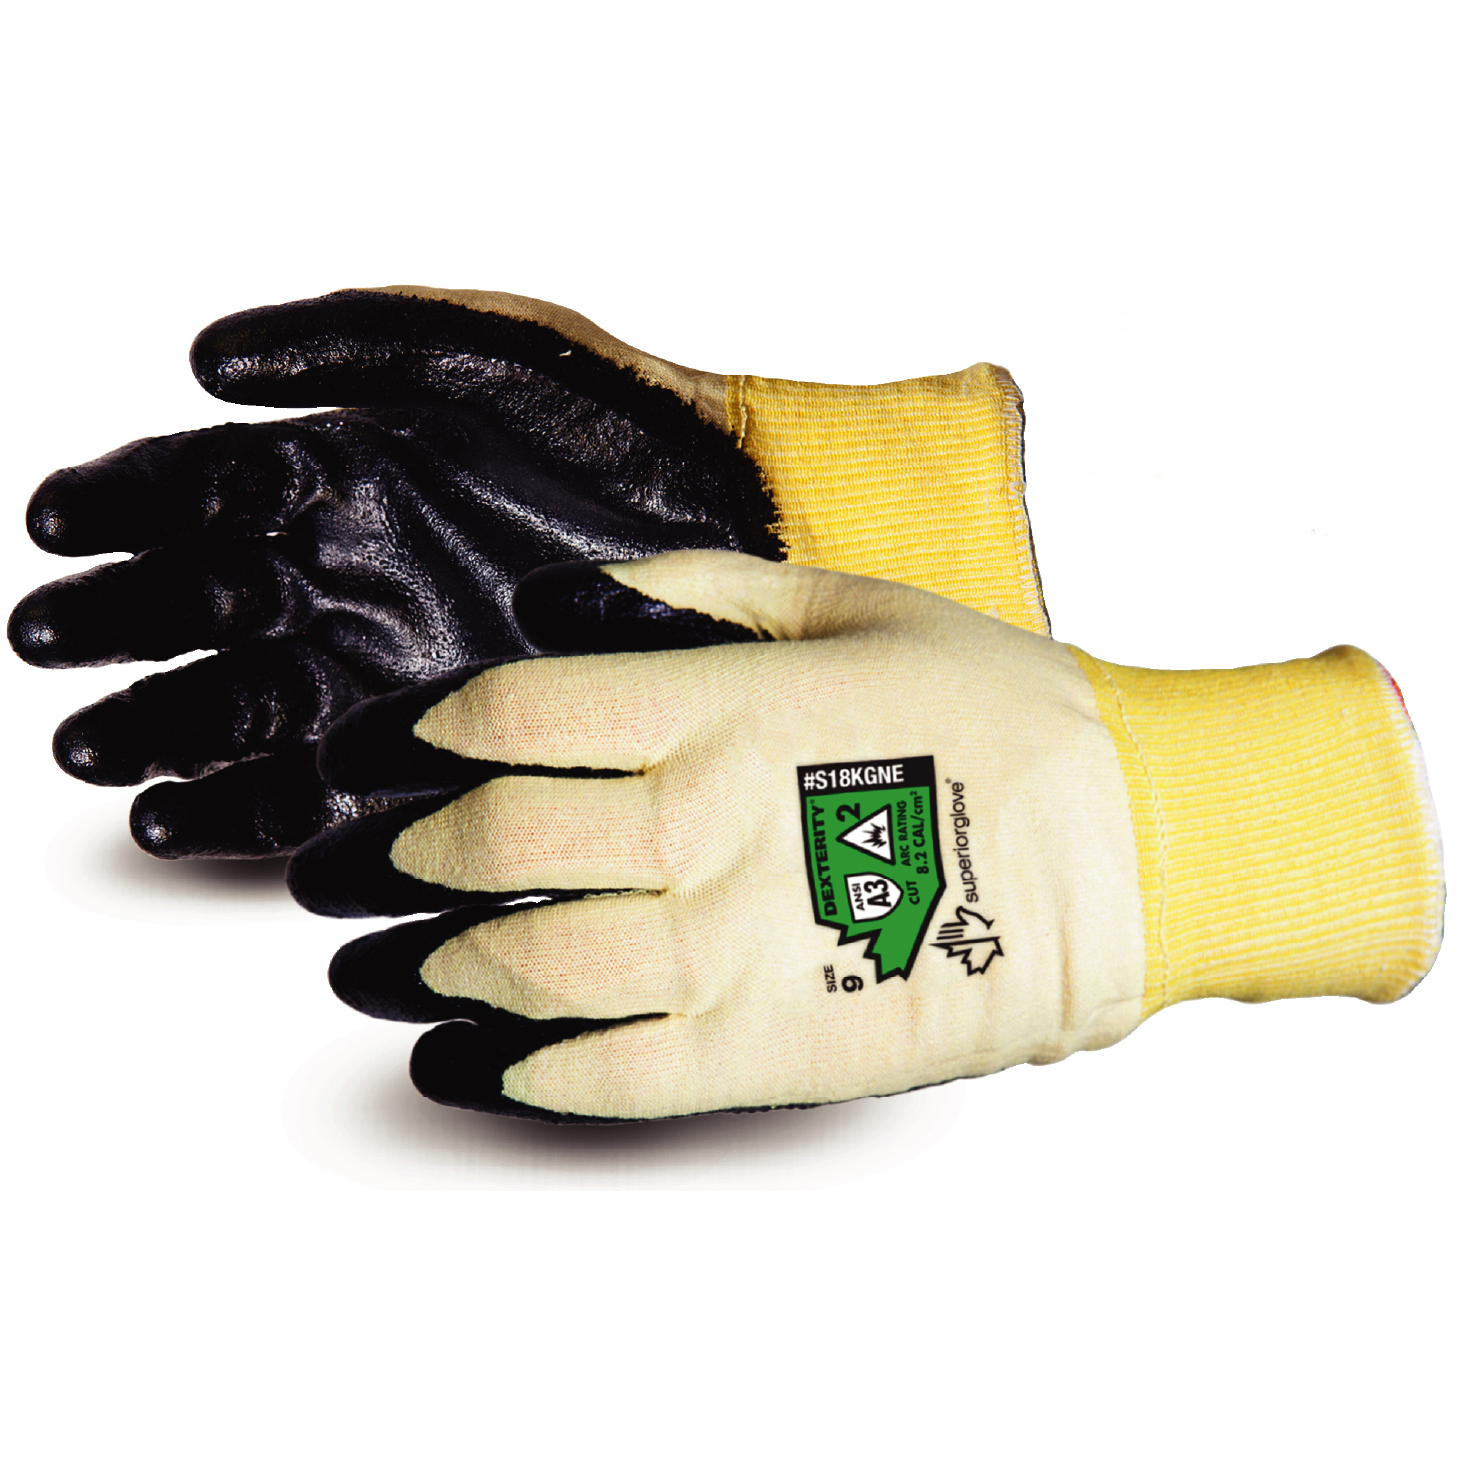 Superior Glove Dexterity 18-G Flame-Resist Arc Flash 8 Black Ref SUS18KGNE08 *Up to 3 Day Leadtime*